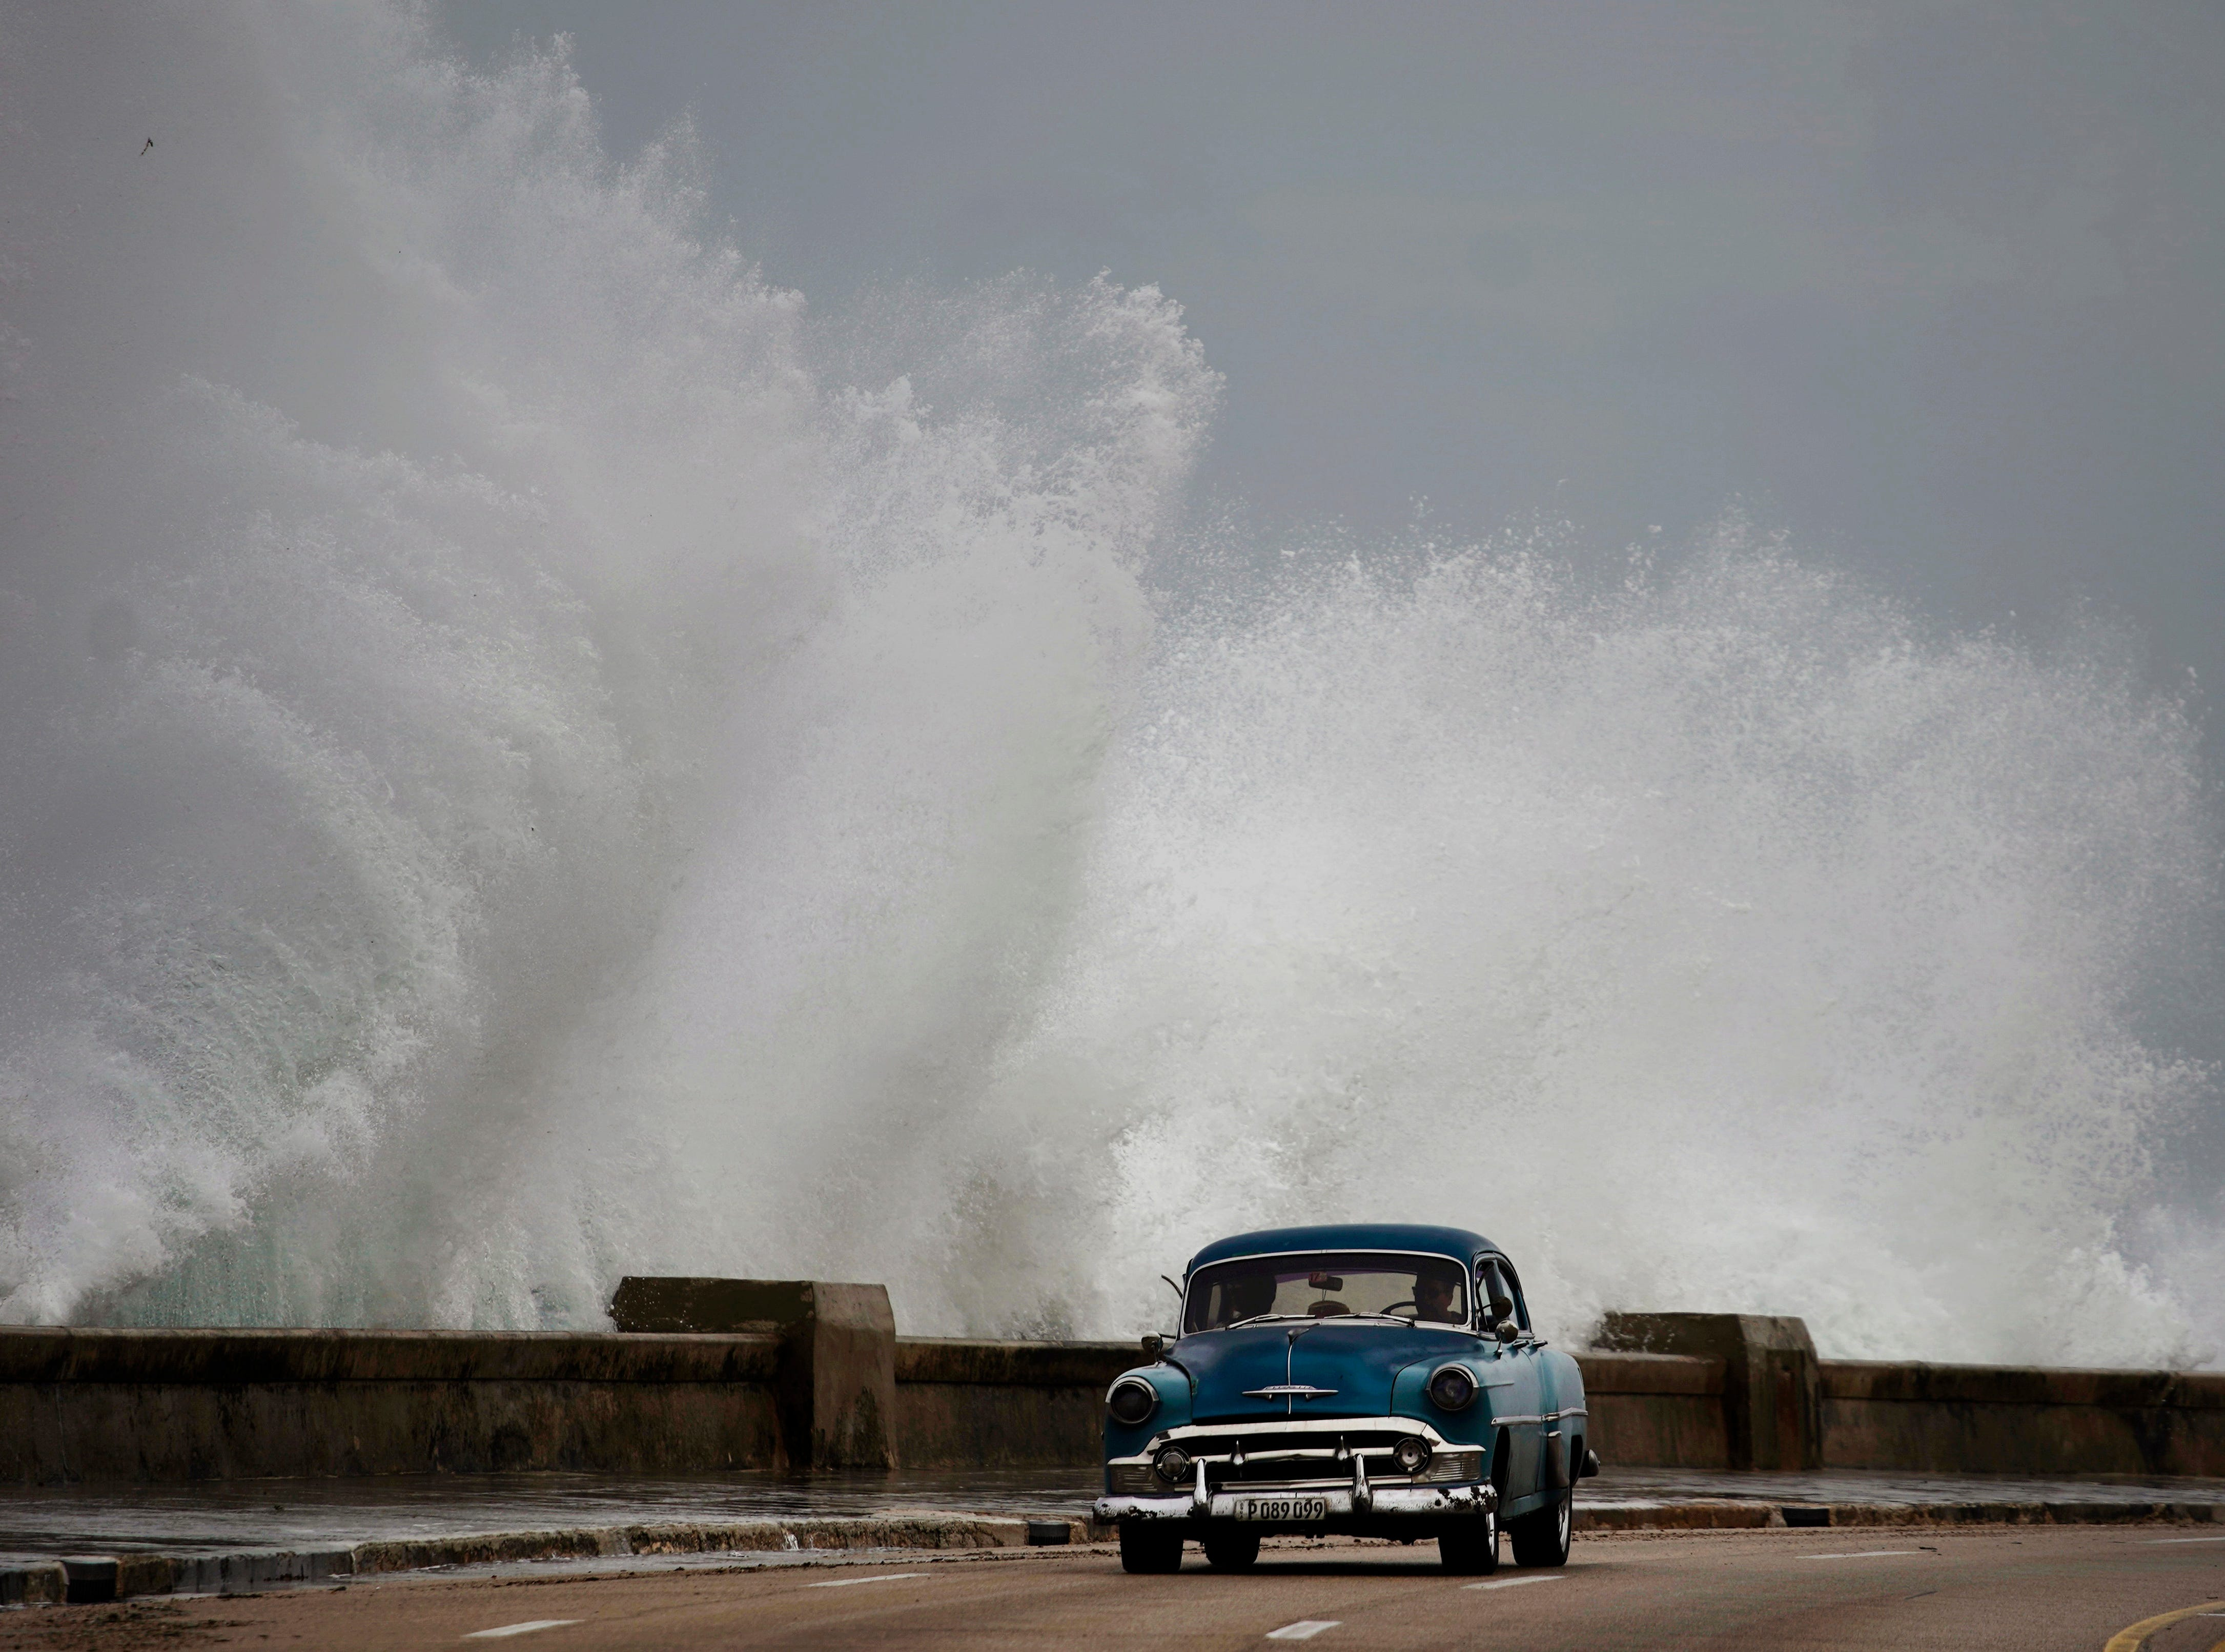 Waves crash against the Malecon, triggered by the outer bands of Hurricane Michael, as man drives past in a classic American car in Havana, Cuba, Tuesday, Oct. 9, 2018. A fast and furious Hurricane Michael is churning toward the Florida Panhandle with 110 mph winds and a potential storm surge of 12 feet, giving tens of thousands of people precious little time to get out.